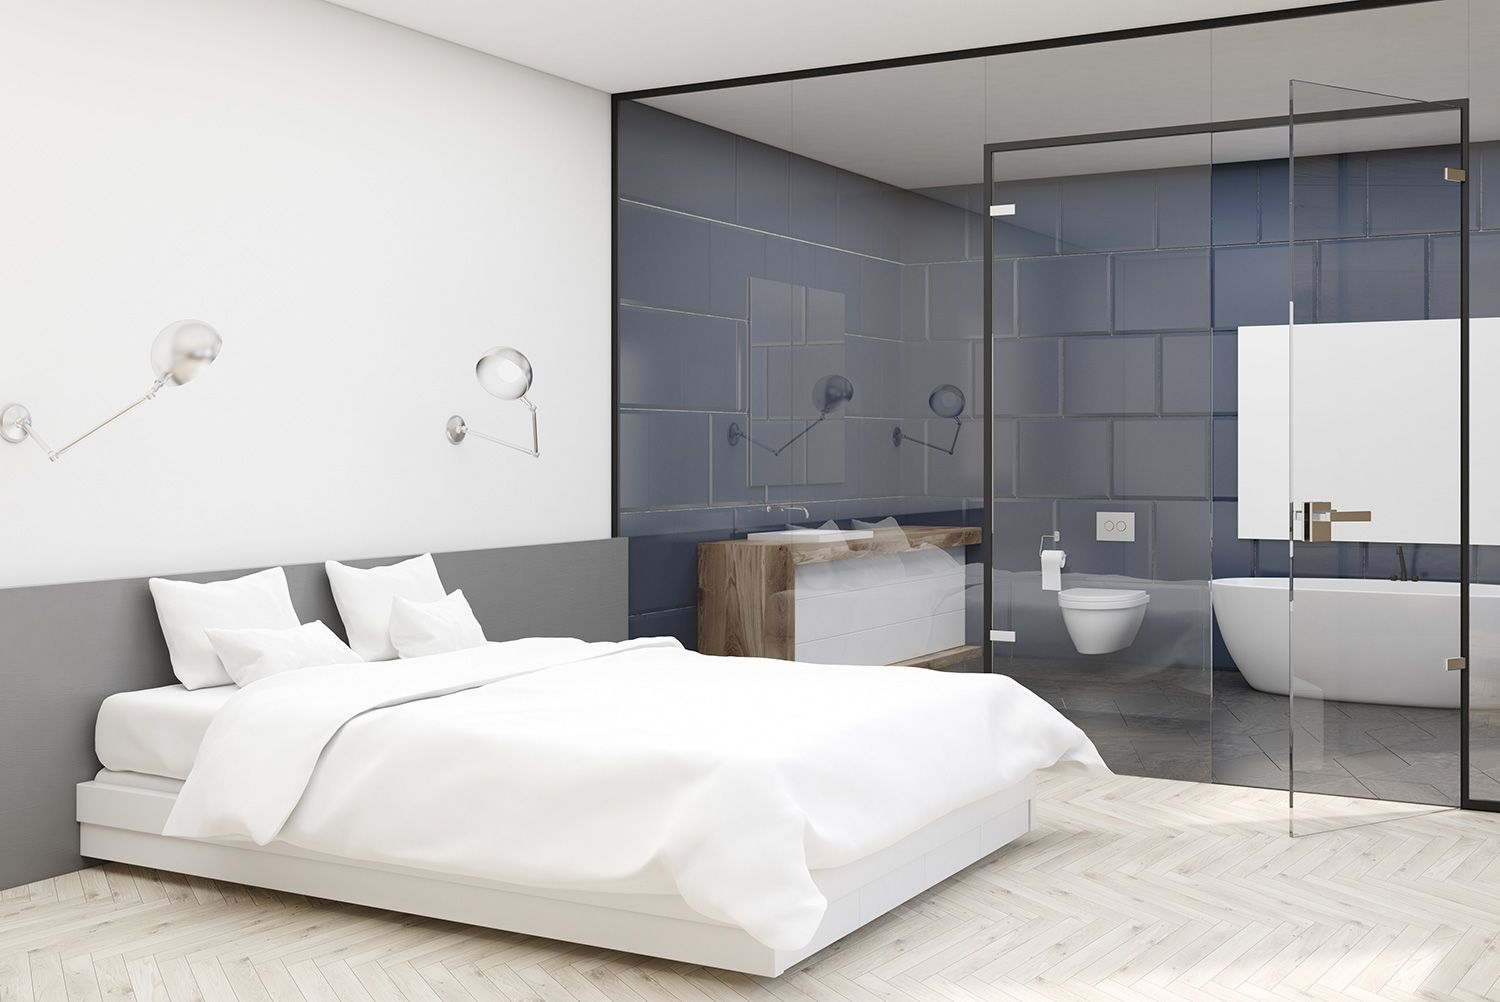 Bedroom EnSuite Partition Glass partition wall, Walls